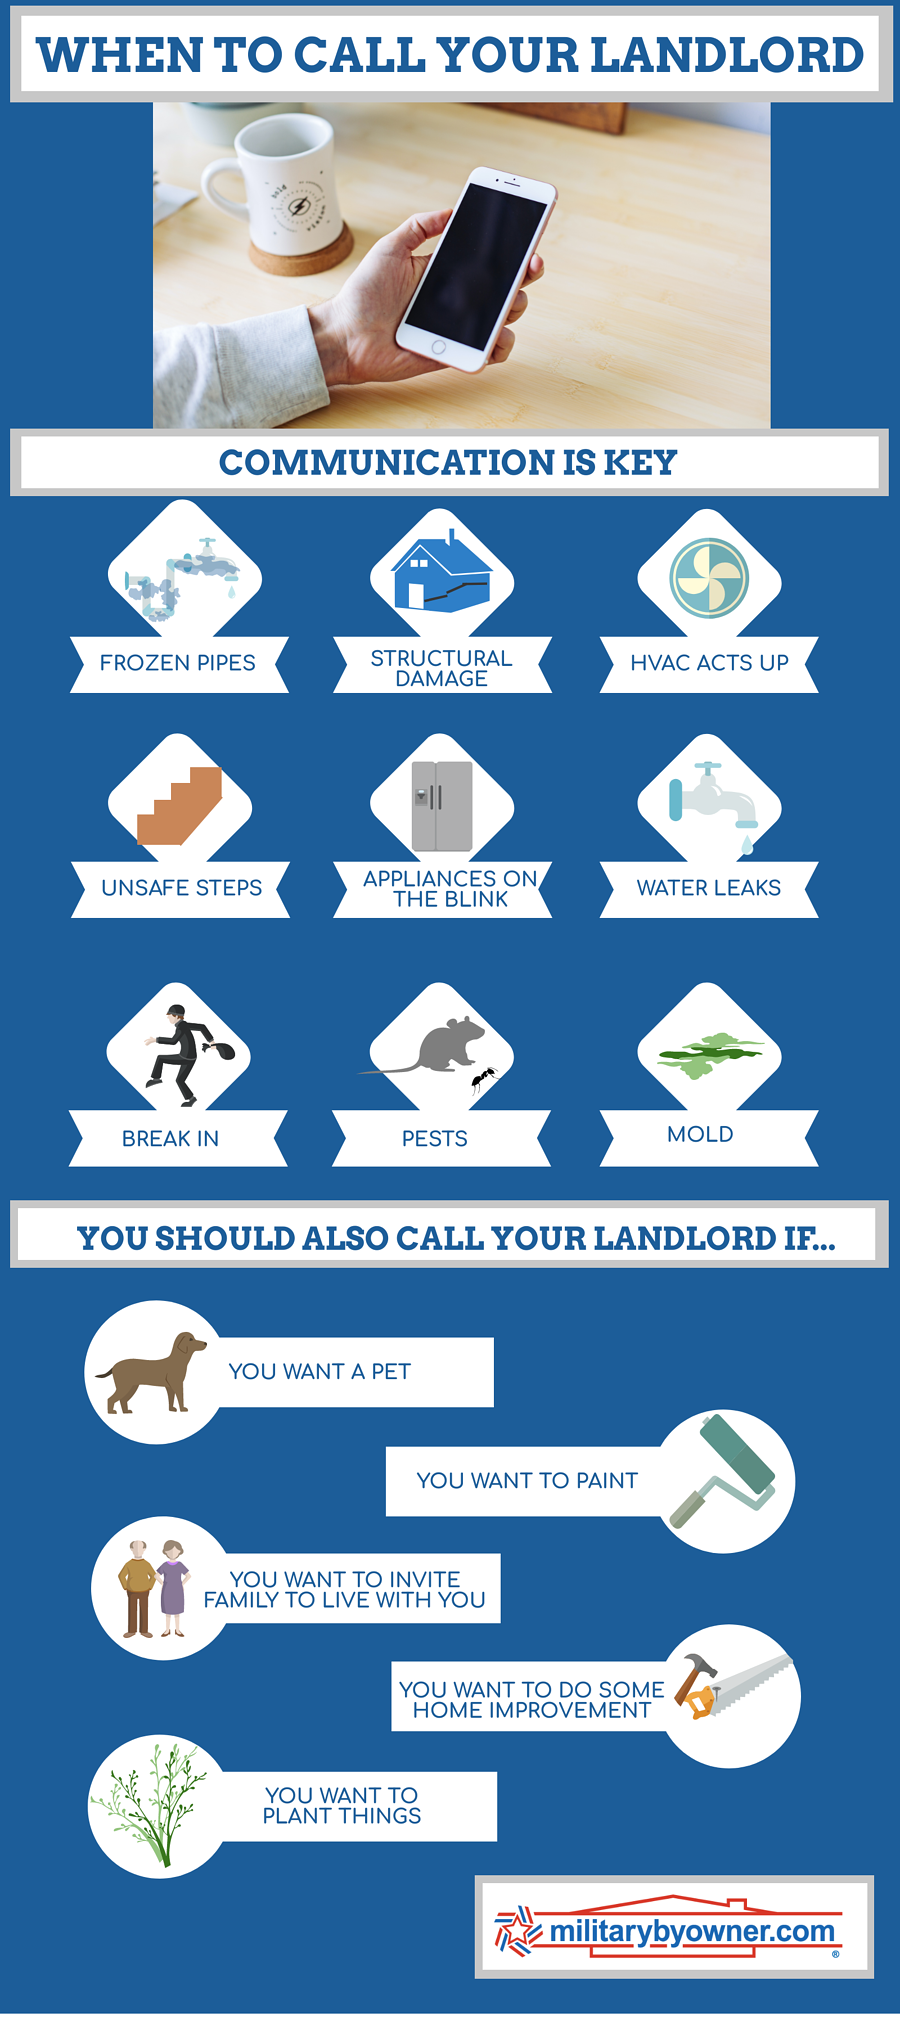 When tenants should call their landlord